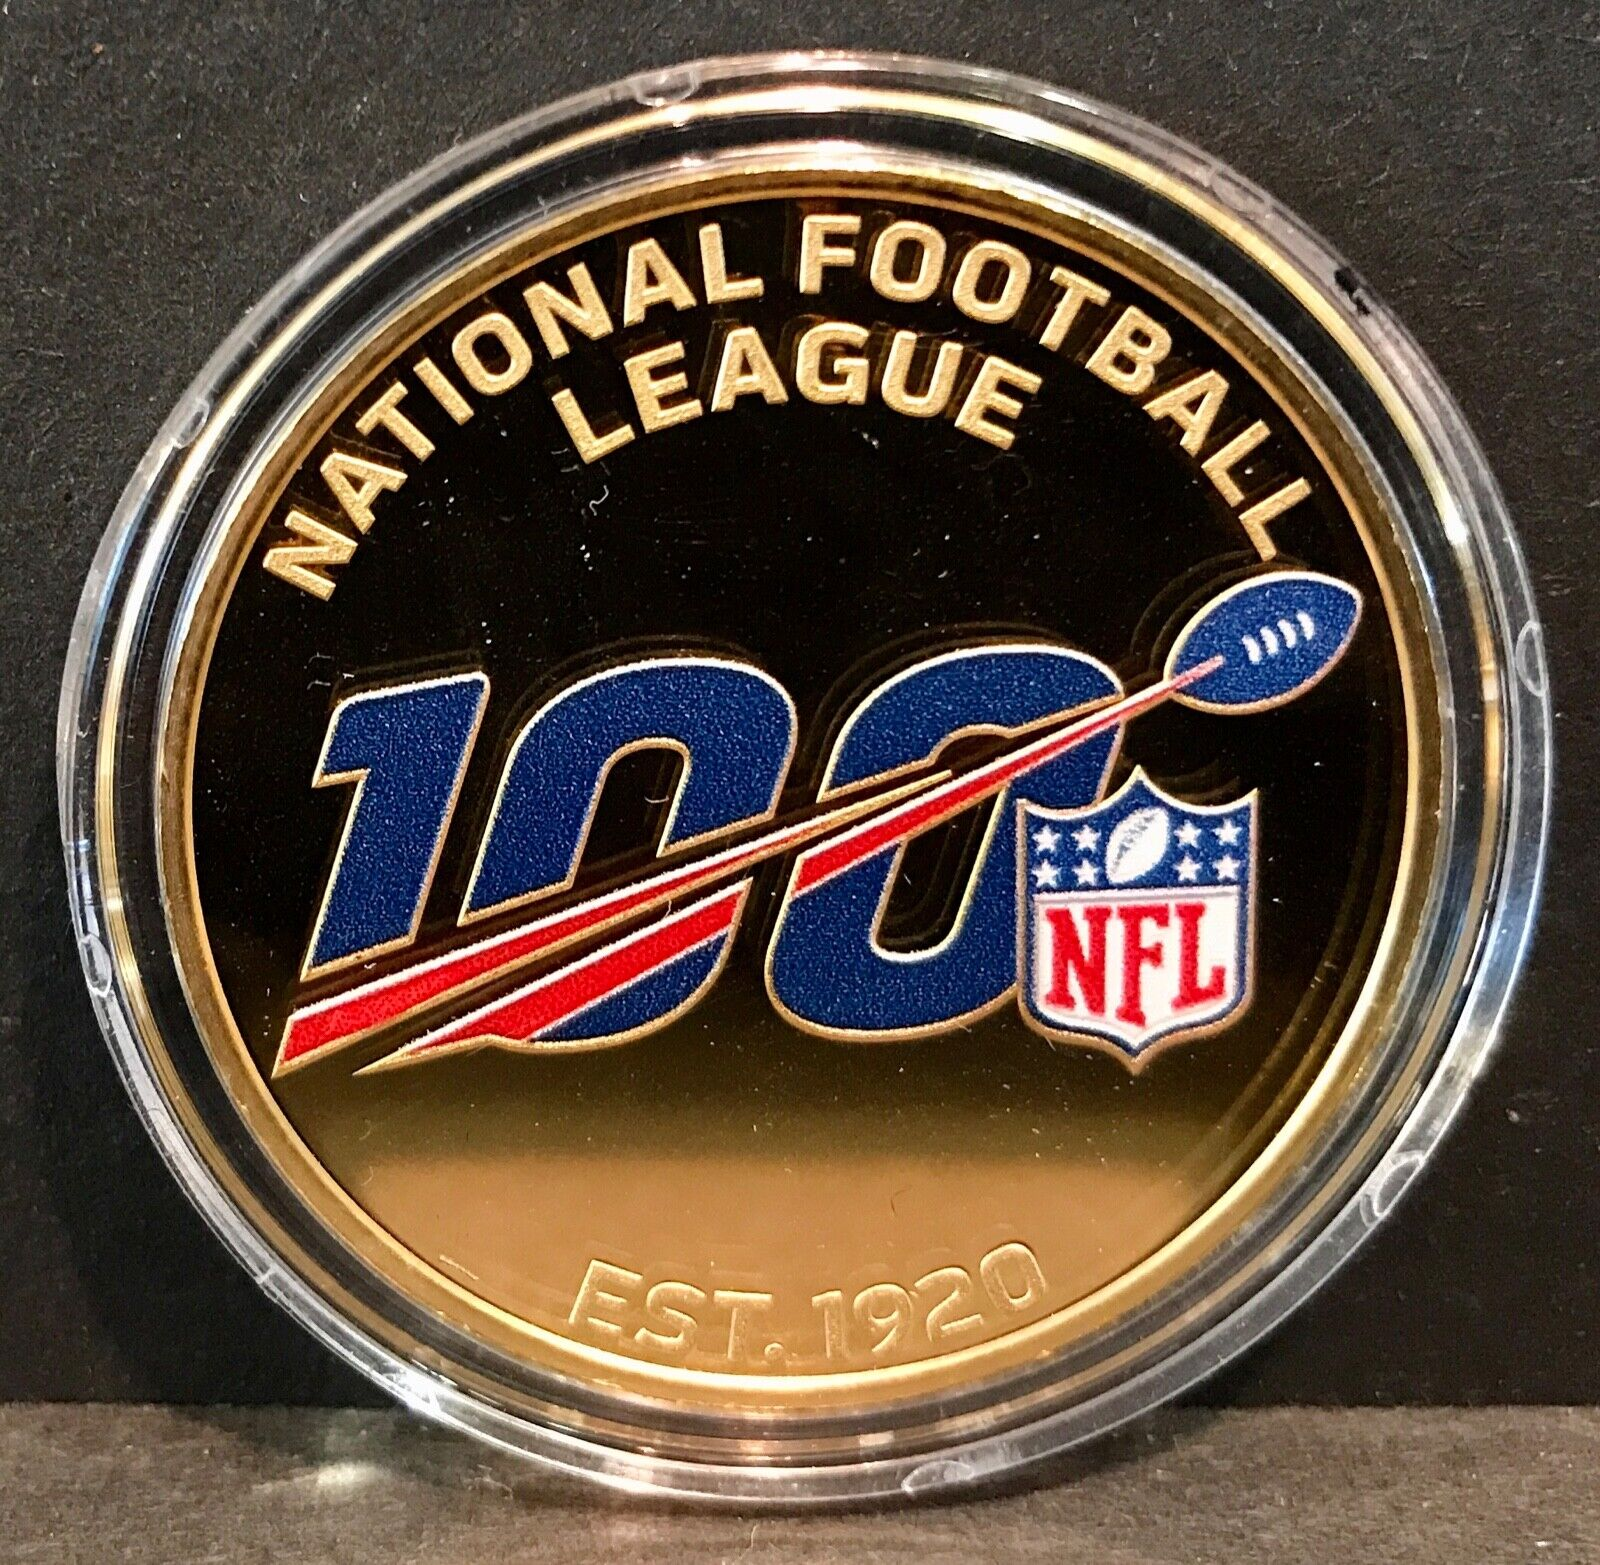 Nfl 100 commemorative coin - 1.5 troy ounces .9999 fine 24kt gold - 100 minted